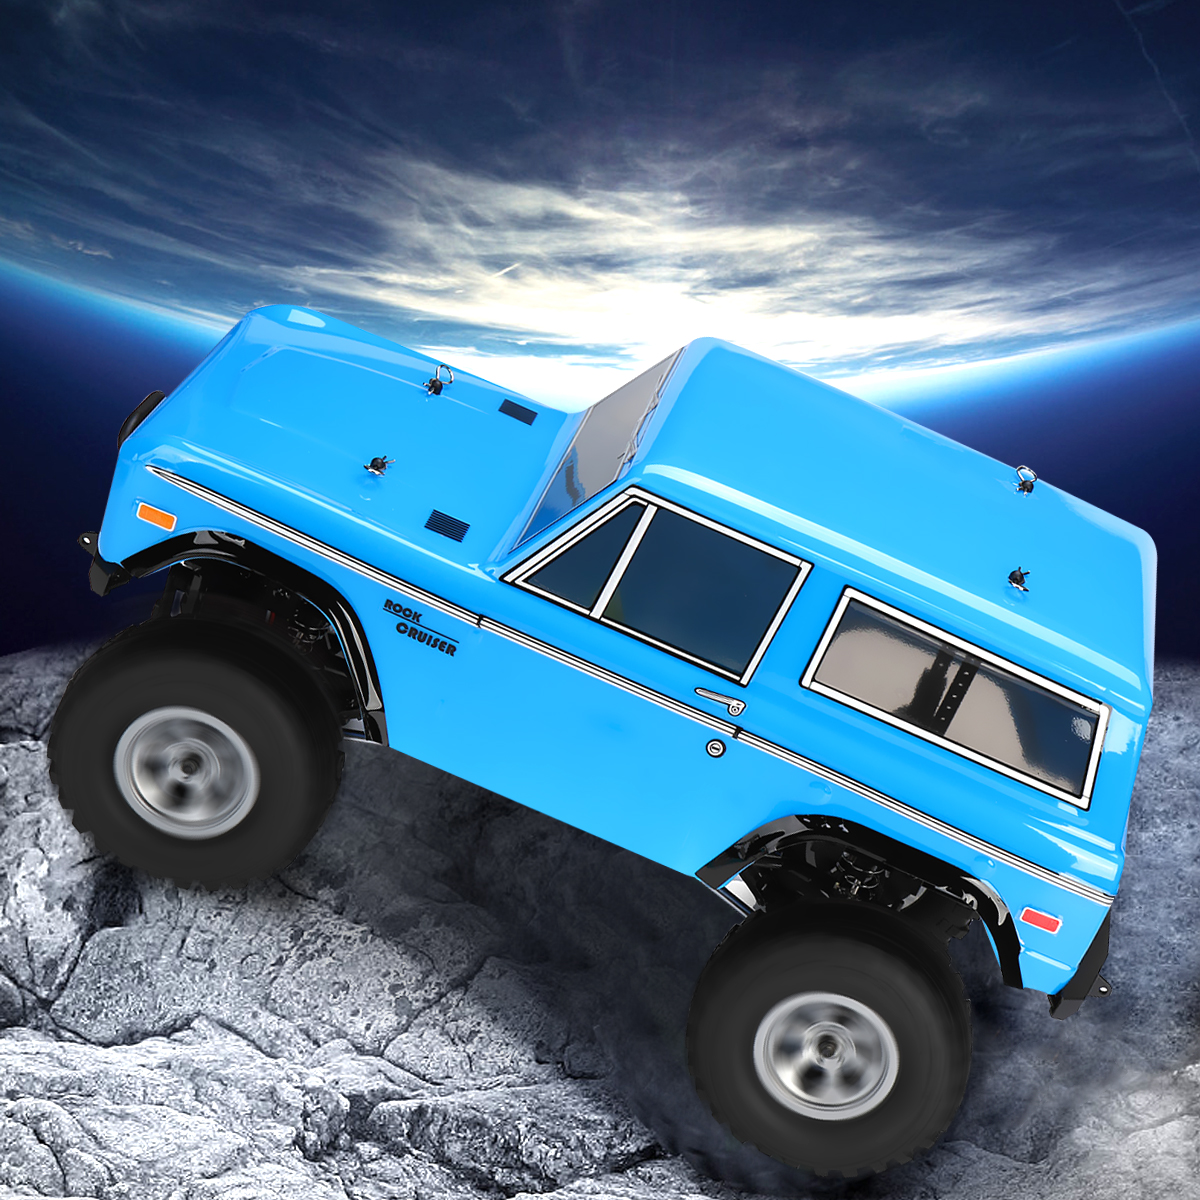 RGT 136100 1/10 2.4G 4WD Racing RC Car Off-Road Rock Crawler Climbing High Speed ​​Truck Toy